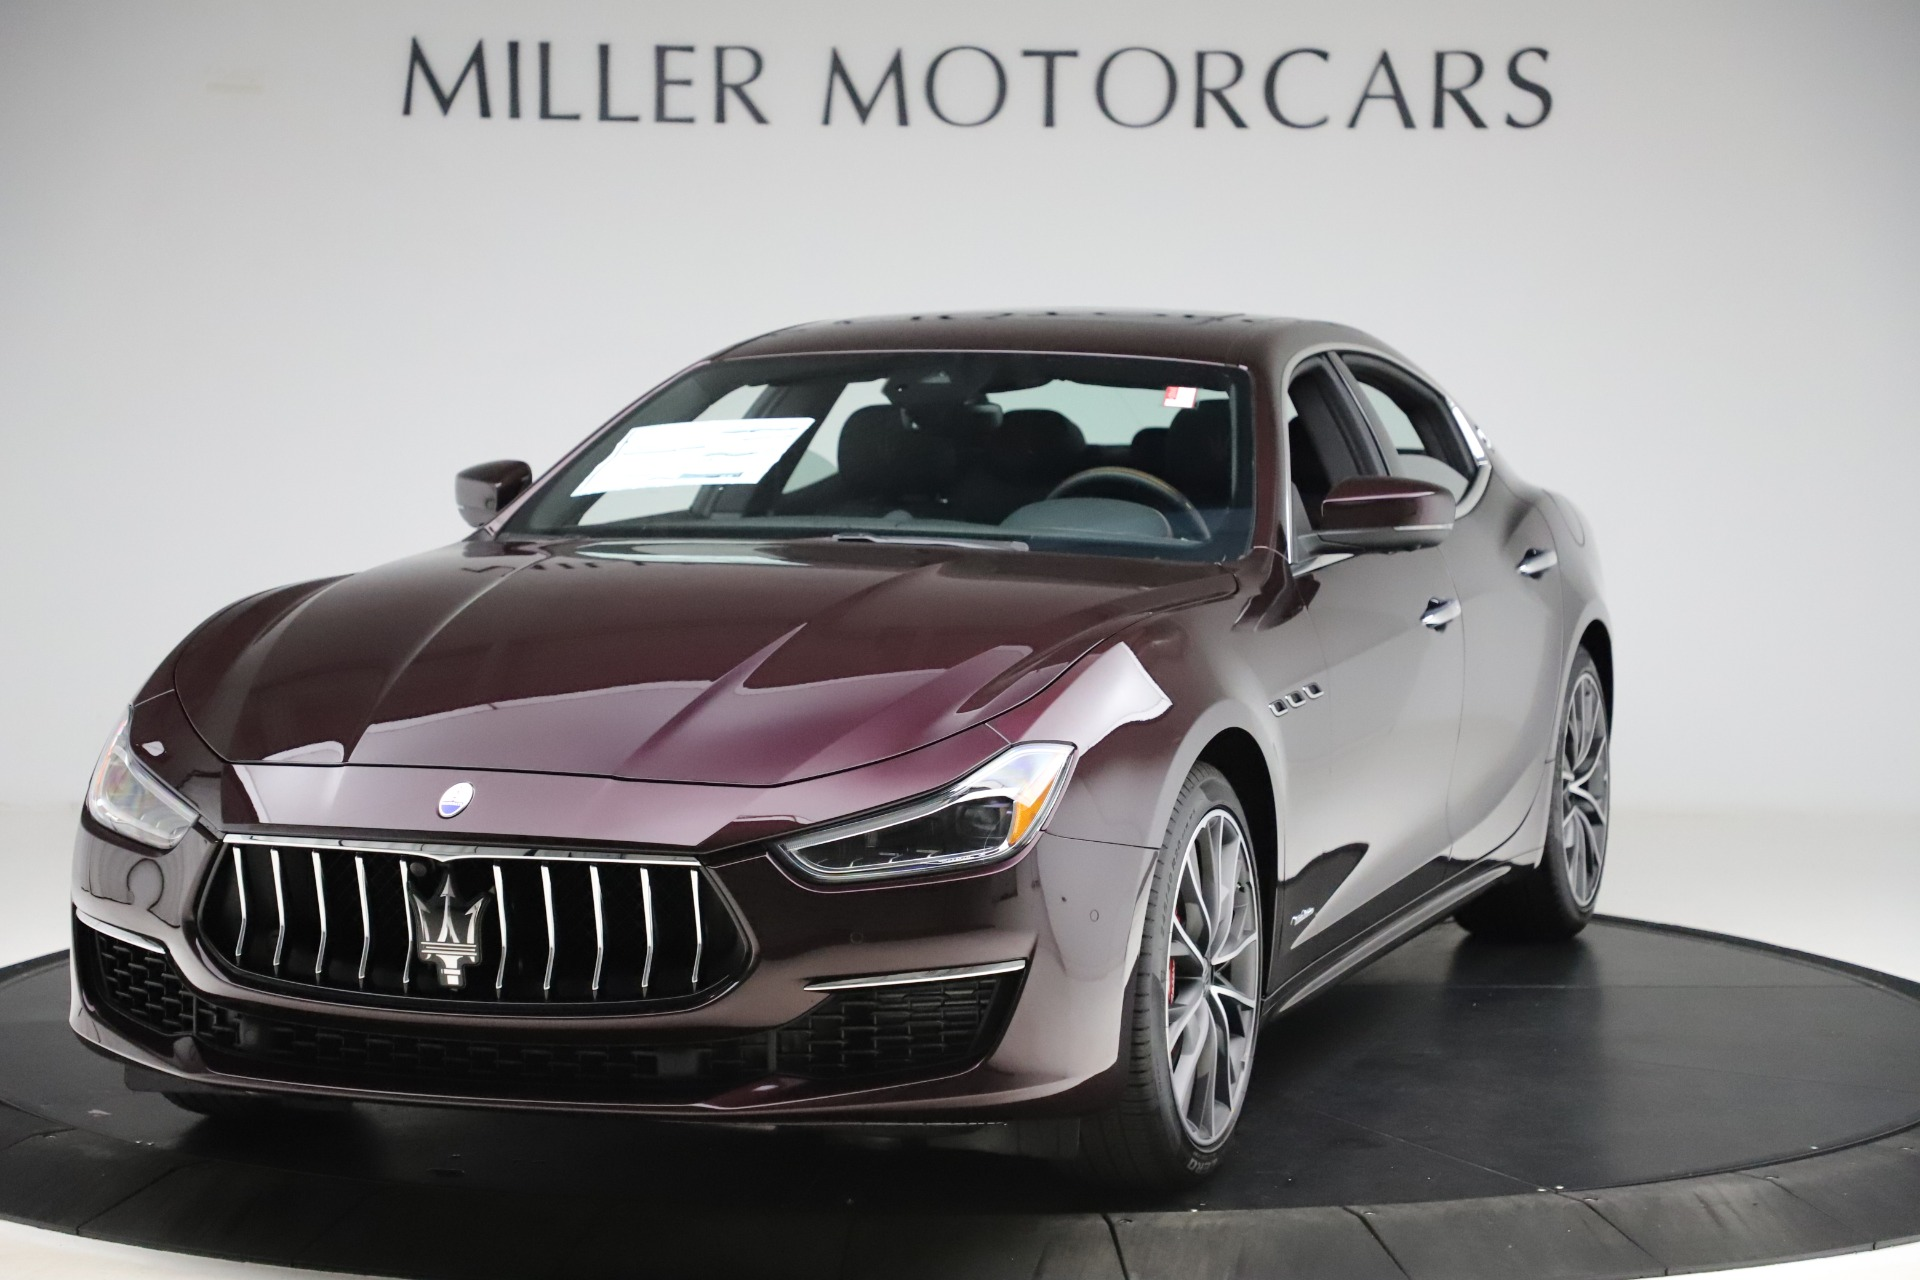 New 2020 Maserati Ghibli SQ4 GranLusso for sale $94,335 at Maserati of Greenwich in Greenwich CT 06830 1